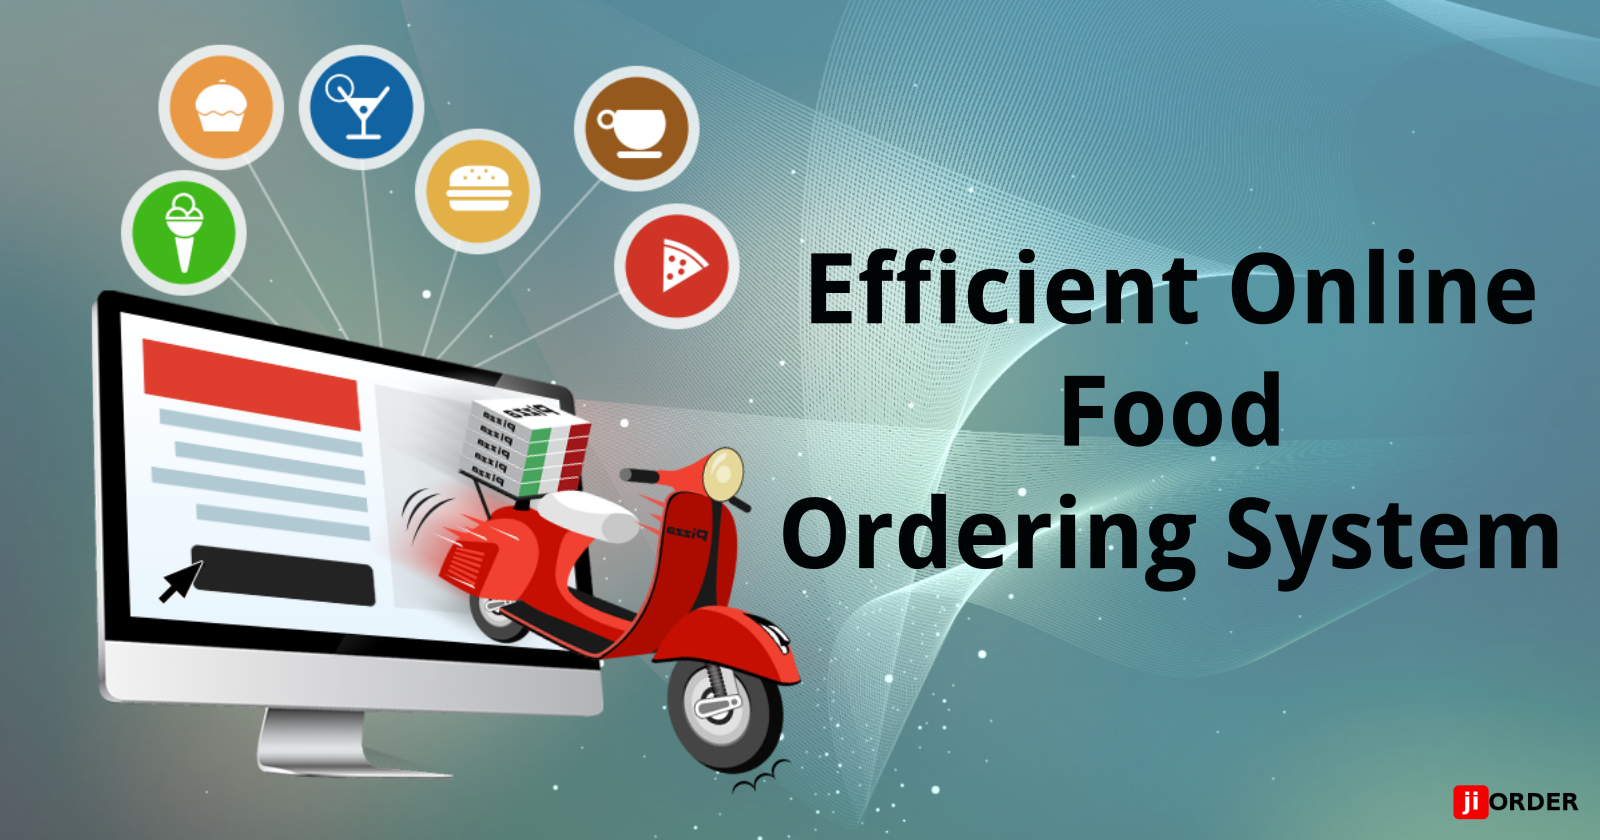 Building an Efficient Online Food Ordering System